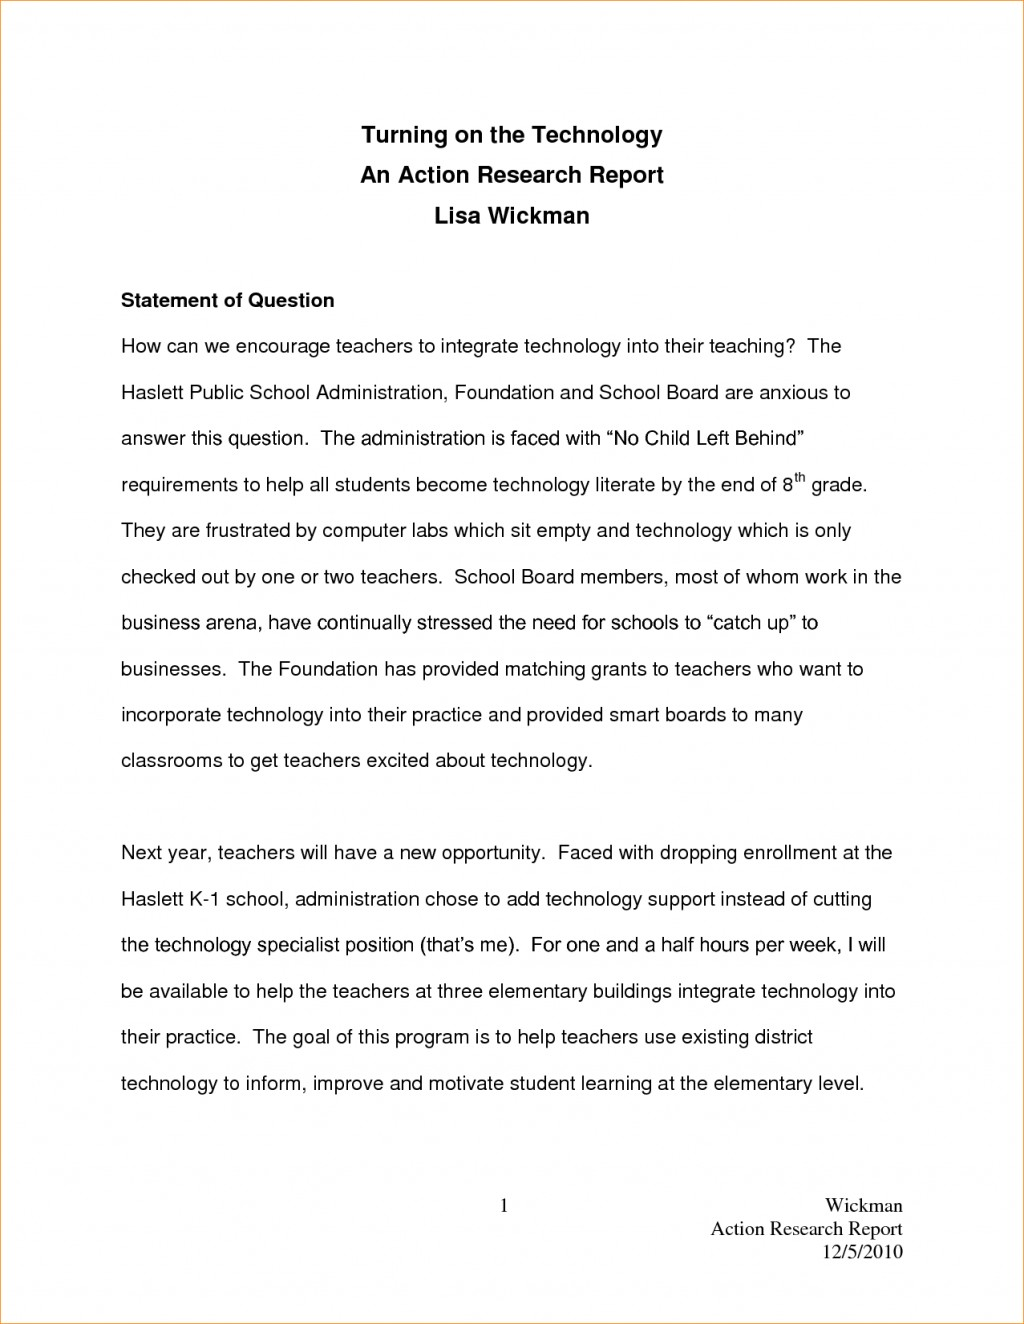 005 What Is Proposal Essay Example Proposals Examples Top A The Purpose Of Good Topic Argument Large